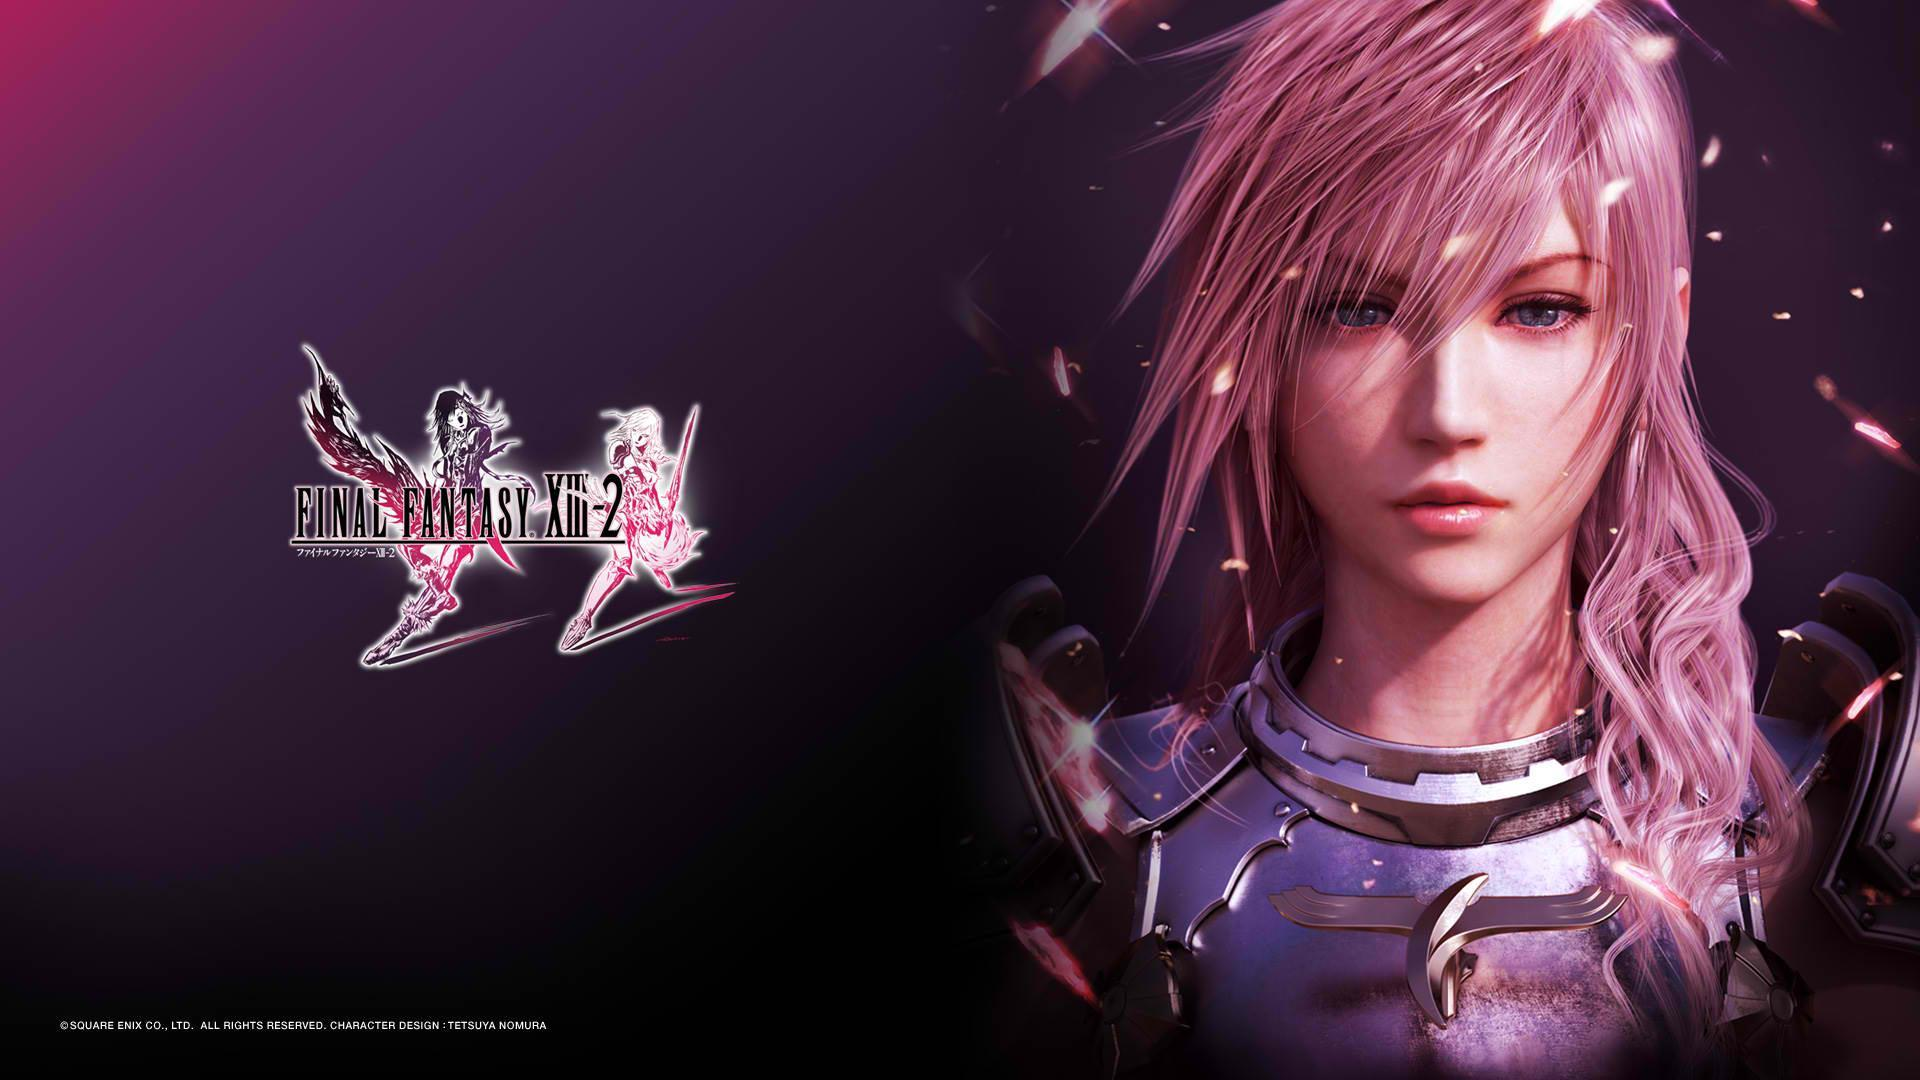 Wallpapers For > Final Fantasy 13 Vanille Wallpapers